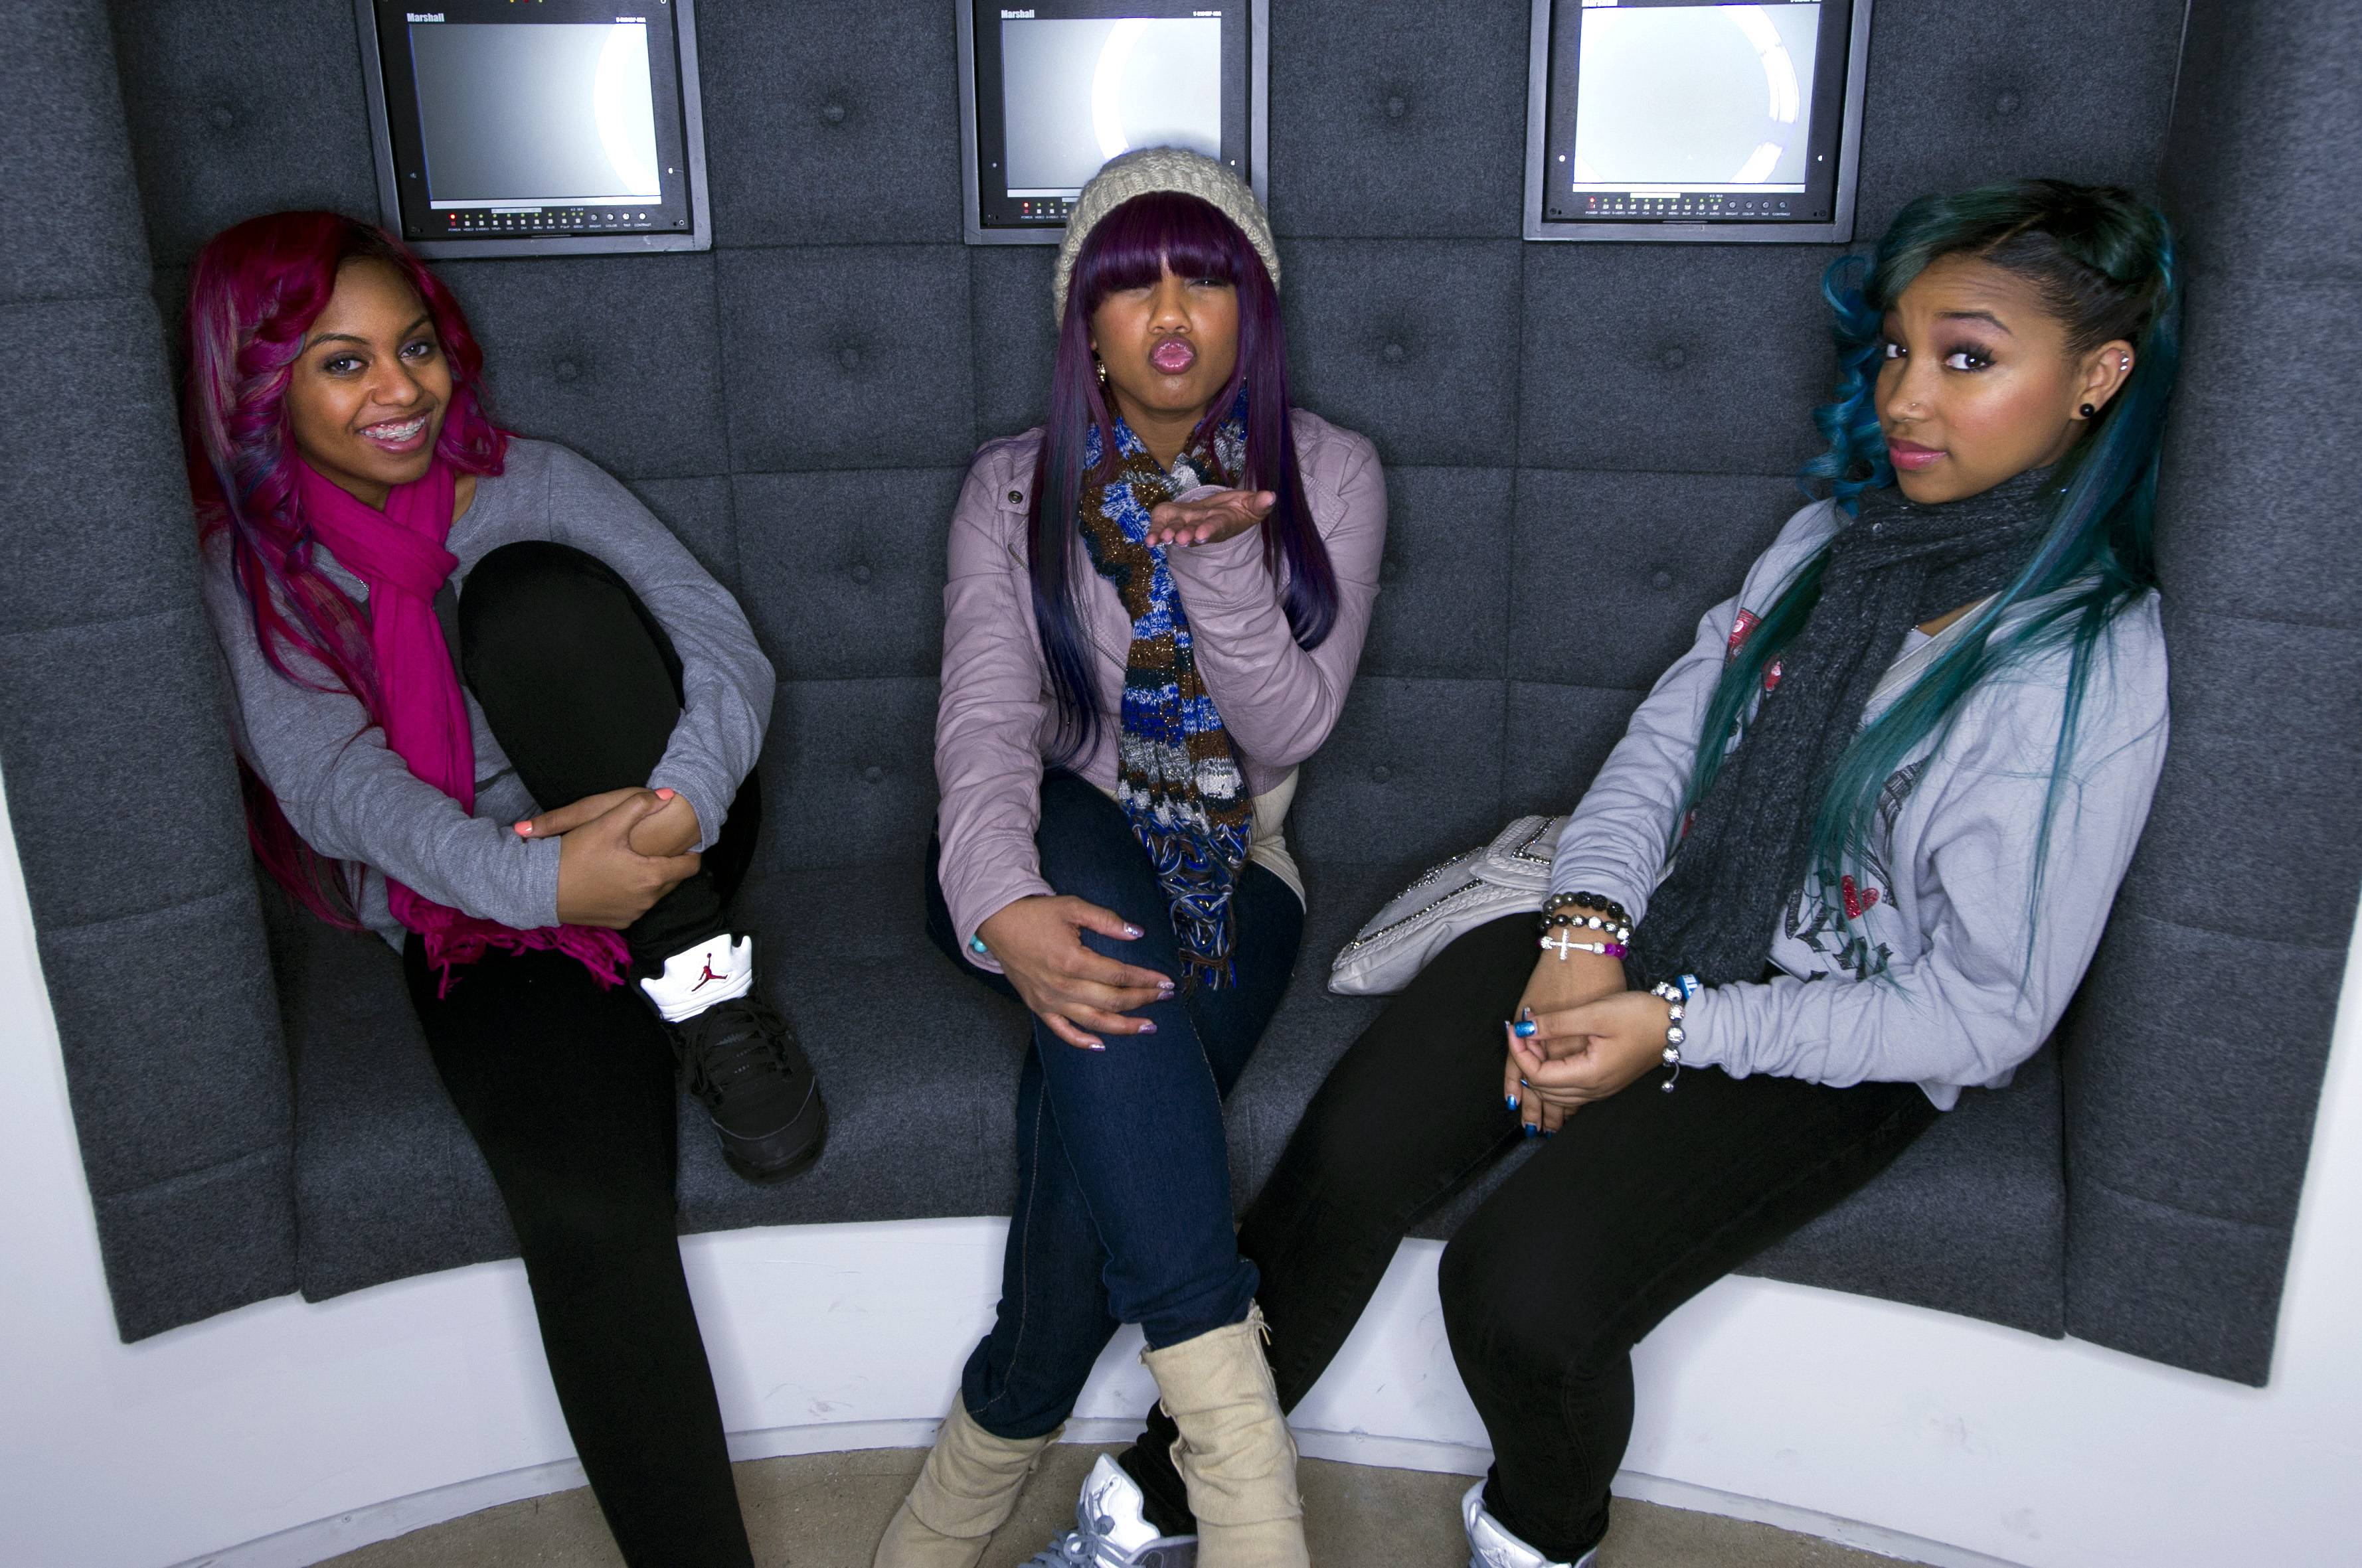 OMG on Errrrrything! - Ladies and gentlemen: The OMG Girlz!Don't miss their performance on 106 & Park this Thursday 3/8 at 6P/5C!(Photo: John Ricard / BET)